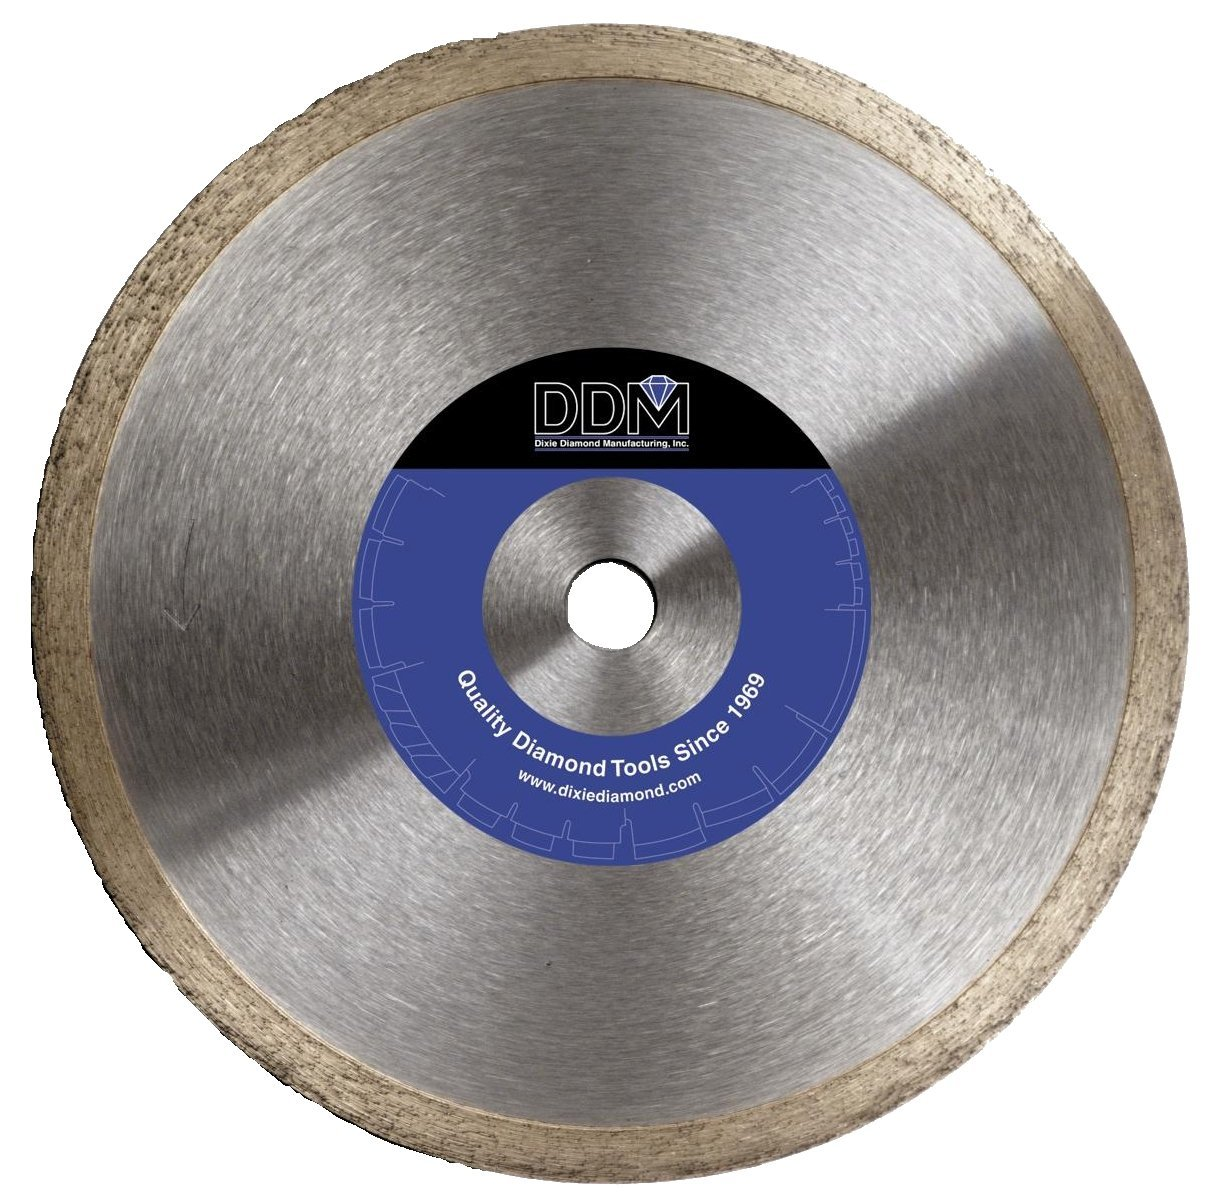 Dixie Diamond Manufacturing T104.5 Tile Blade Budget Grade for Wet Cutting, 4.5-Inch X 0.060-Inch X 7/8-Inch with 5/8-Inch Bushing